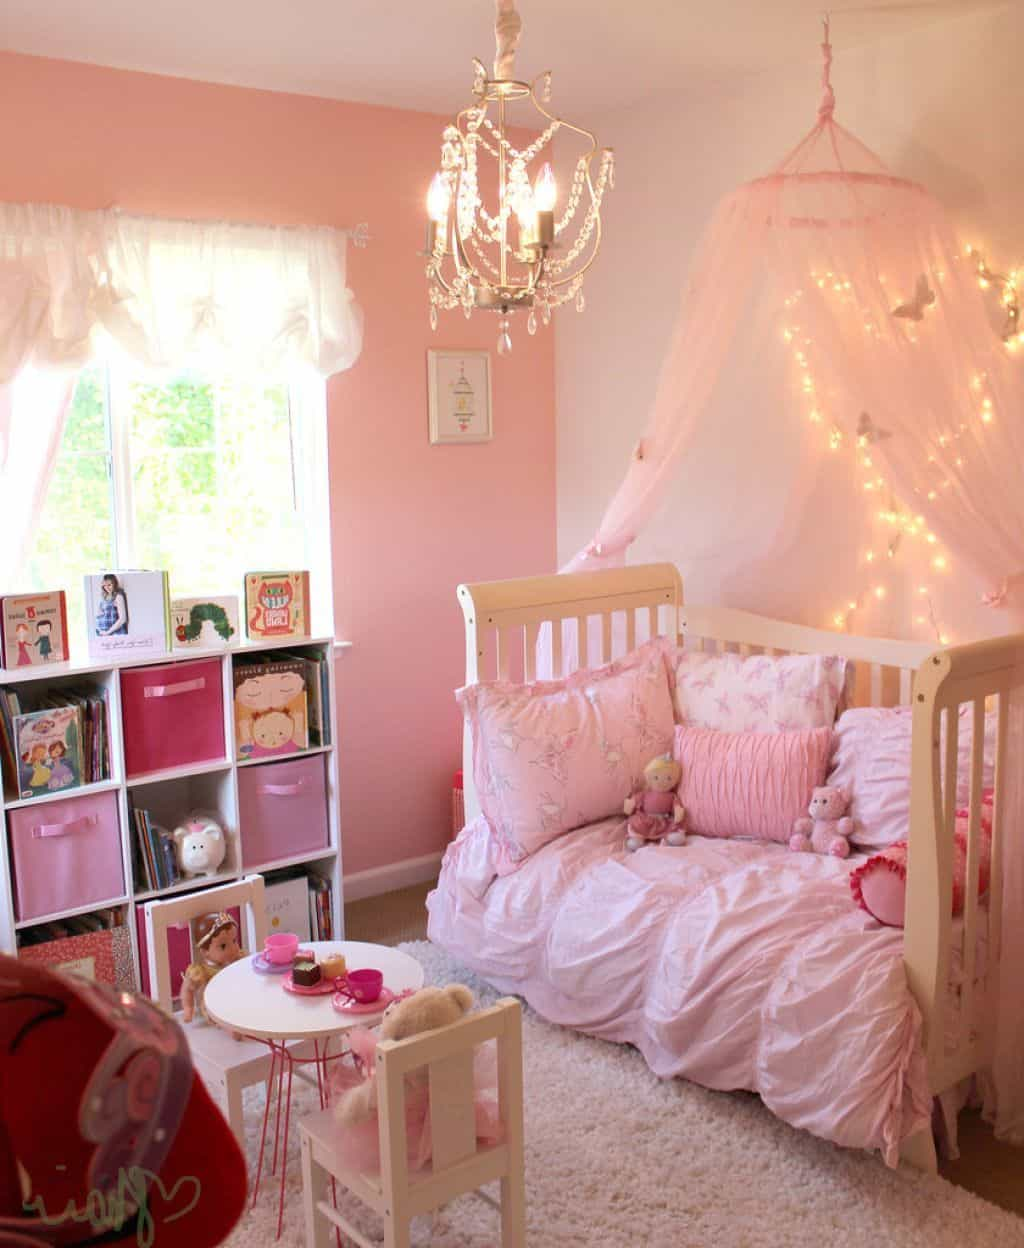 32 Cheery Designs For A Little Girl's Dream Bedroom